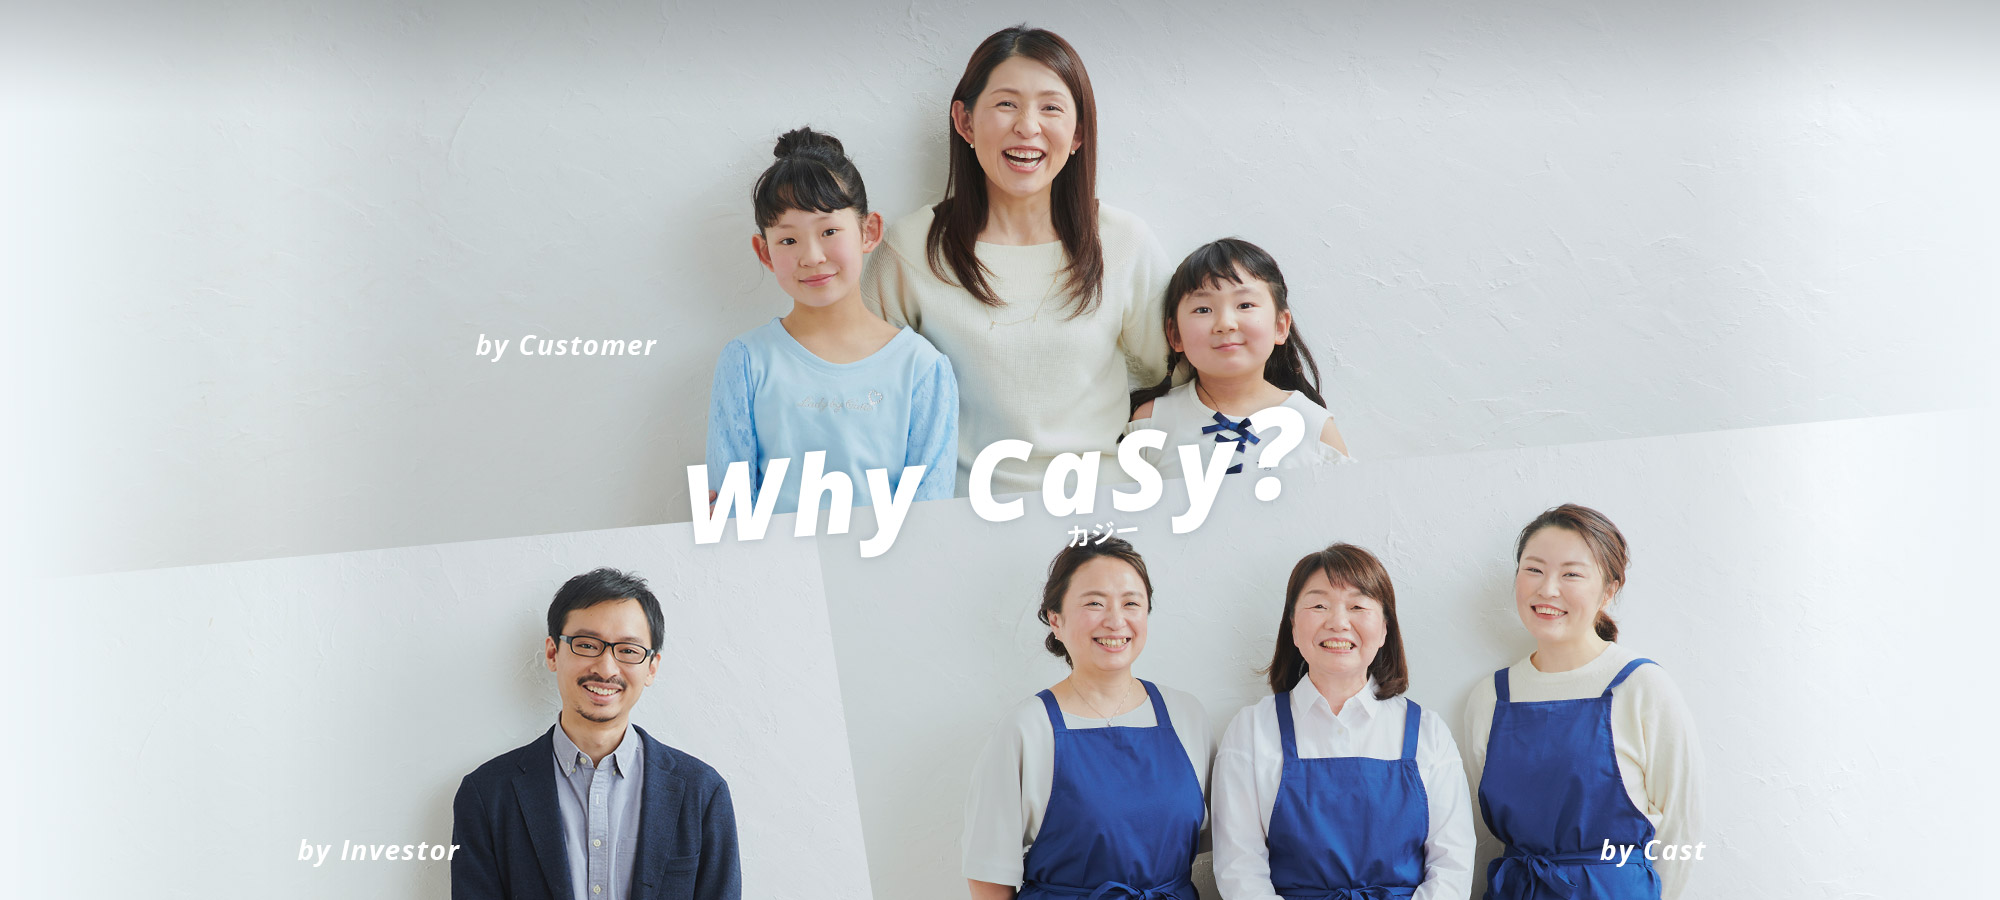 Why Casy?